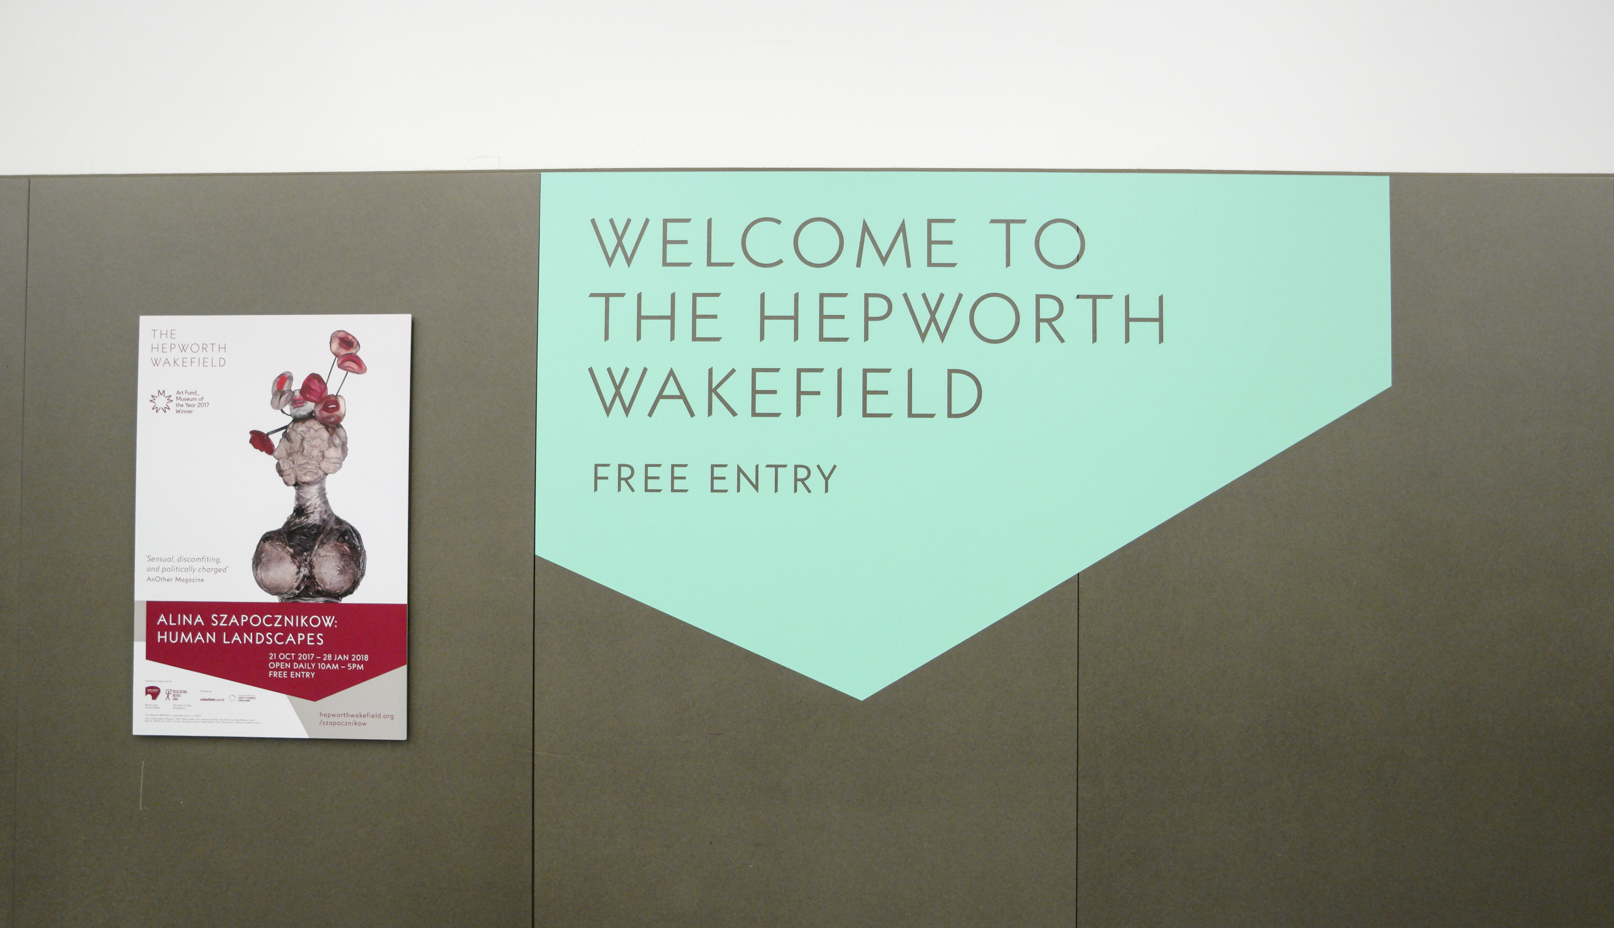 Welcome to the hepworth wakefield